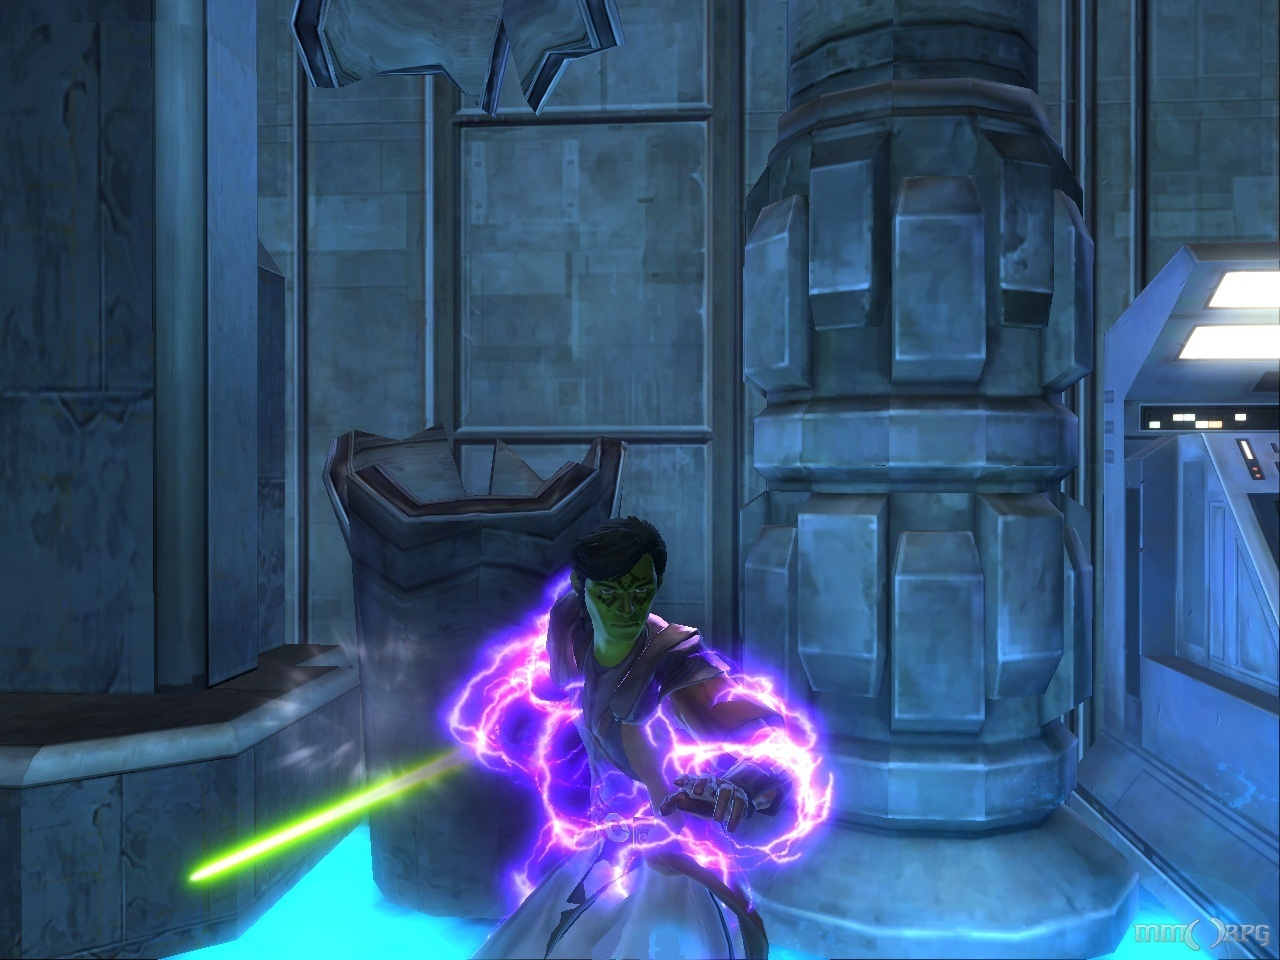 This goo has given me the powers of the Sith!